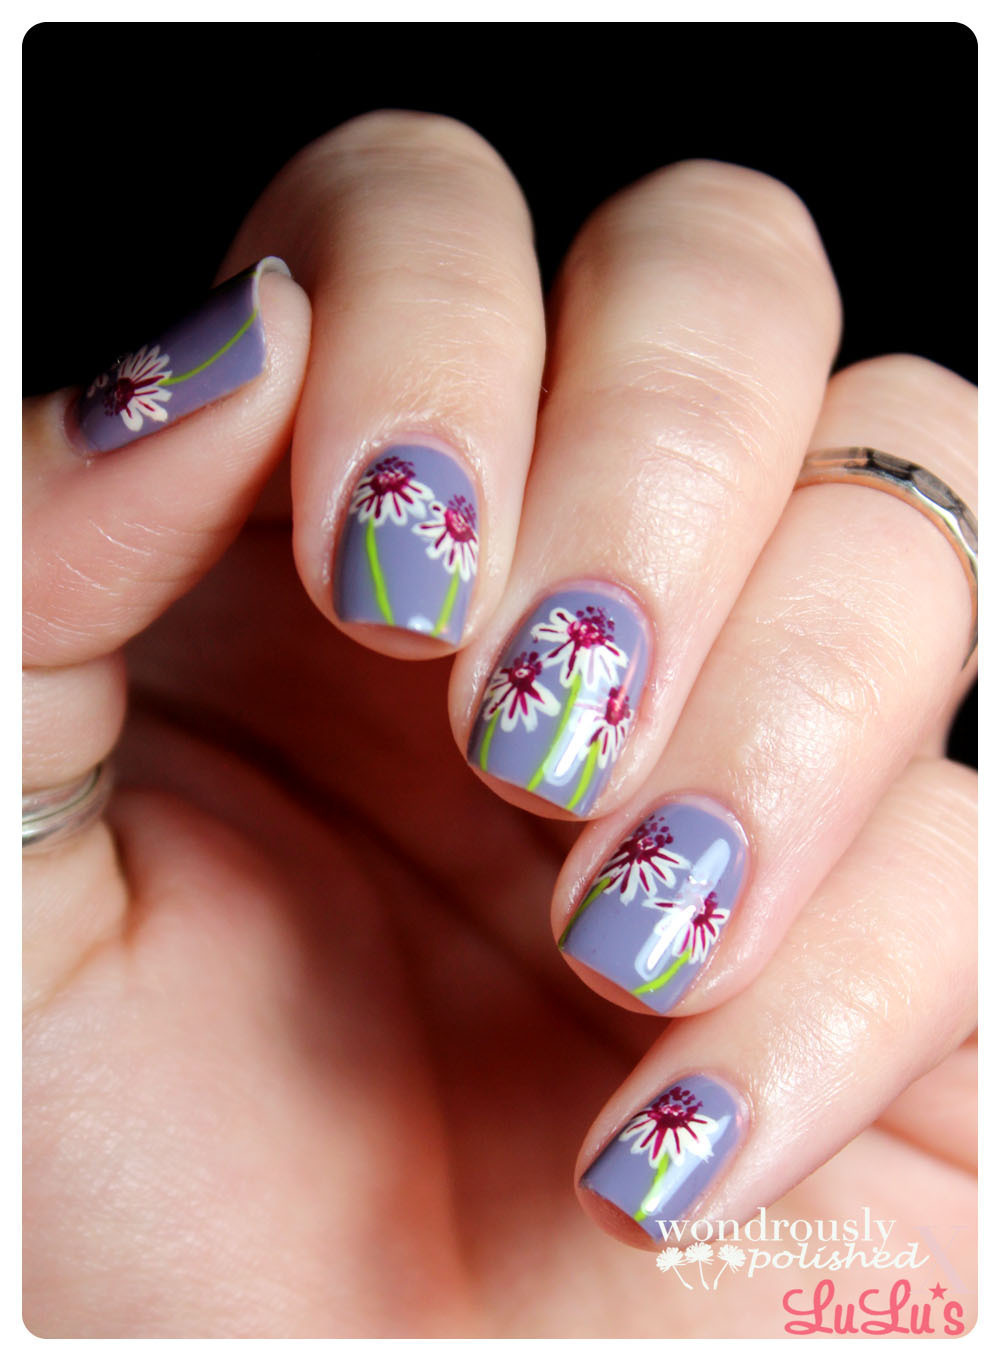 Daisy Floral Nail Art 183 How To Paint Patterned Nail Art 183 Beauty On Cut Out Keep